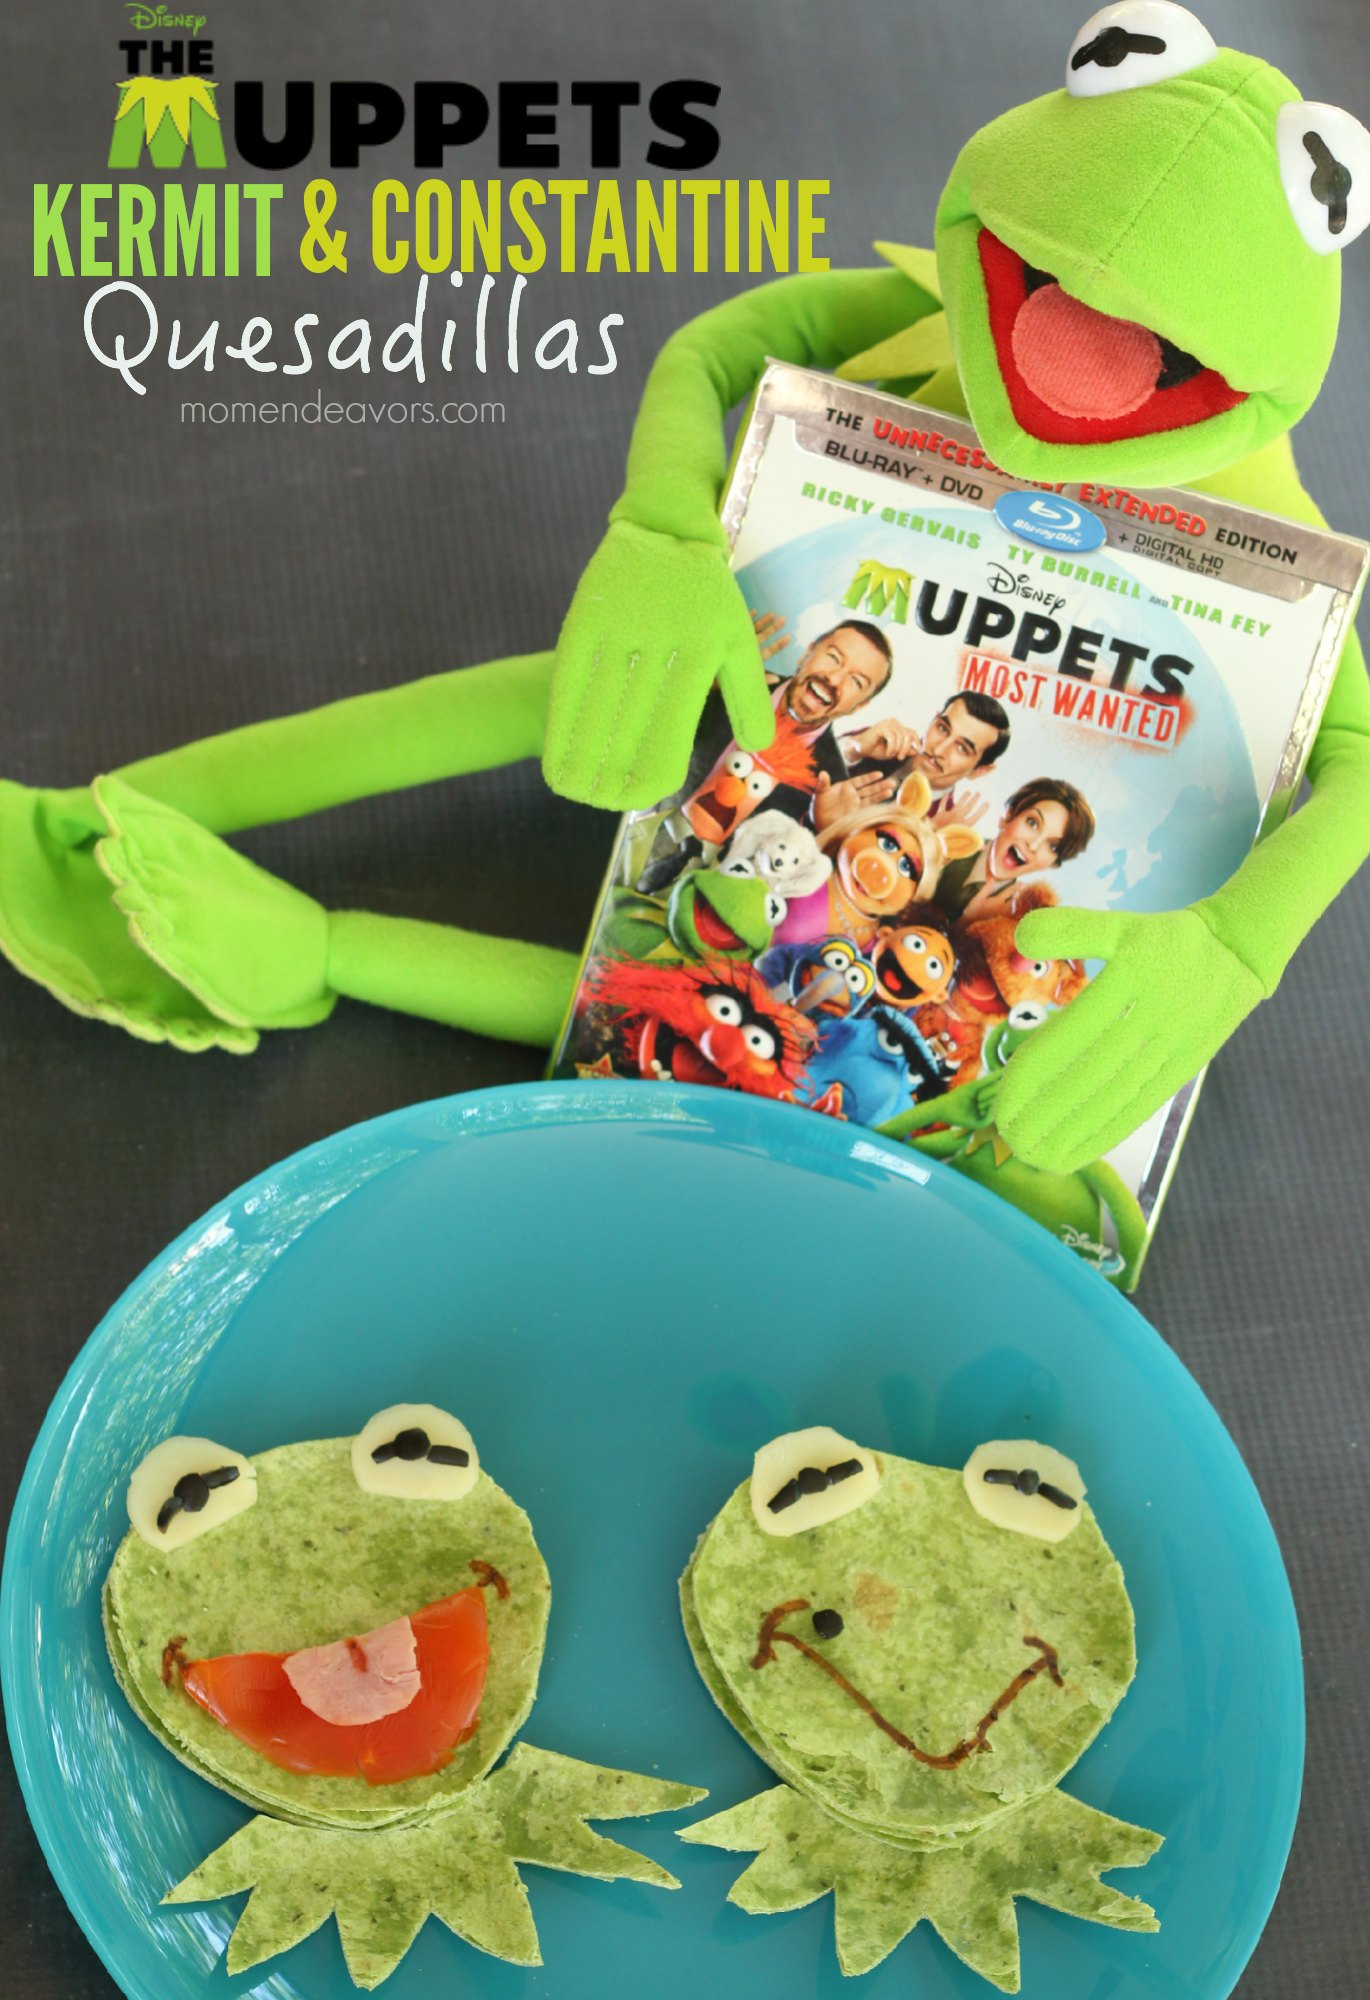 Muppets Most Wanted Kermit & Constantine Fun Food Idea